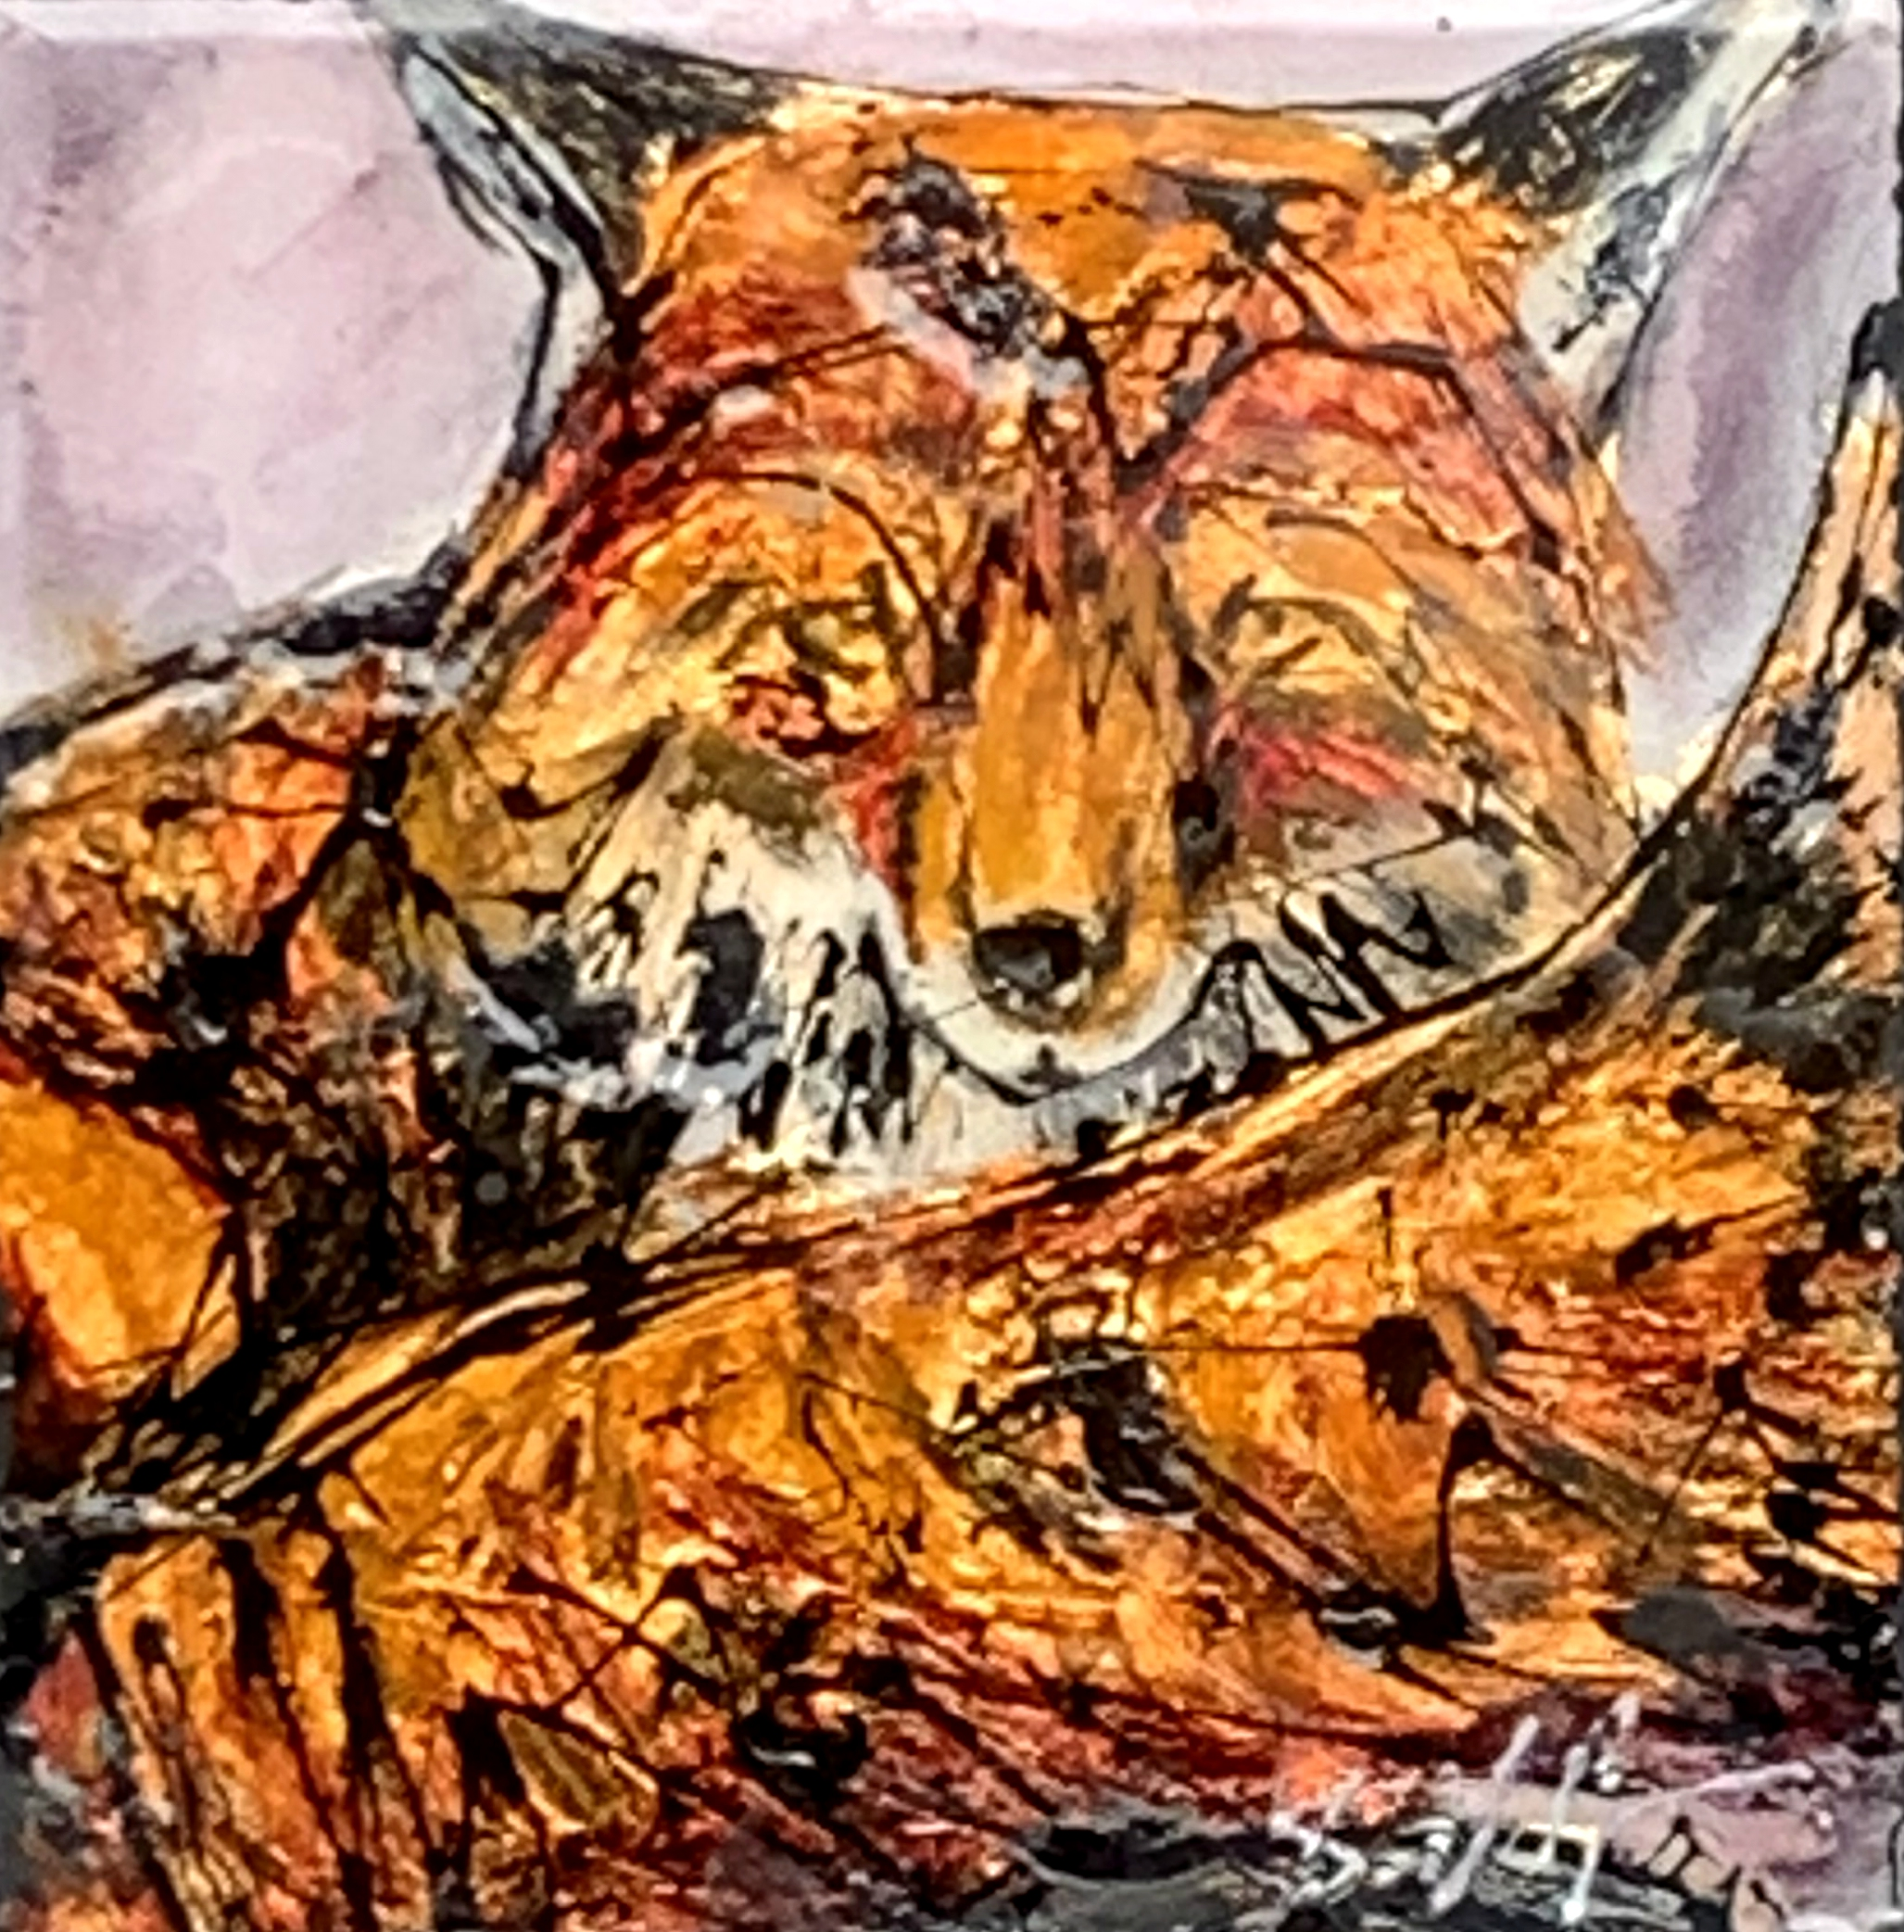 Canada 32, mixed media fox painting by David Zimmerman | Effusion Art Gallery + Cast Glass Studio, Invermere BC